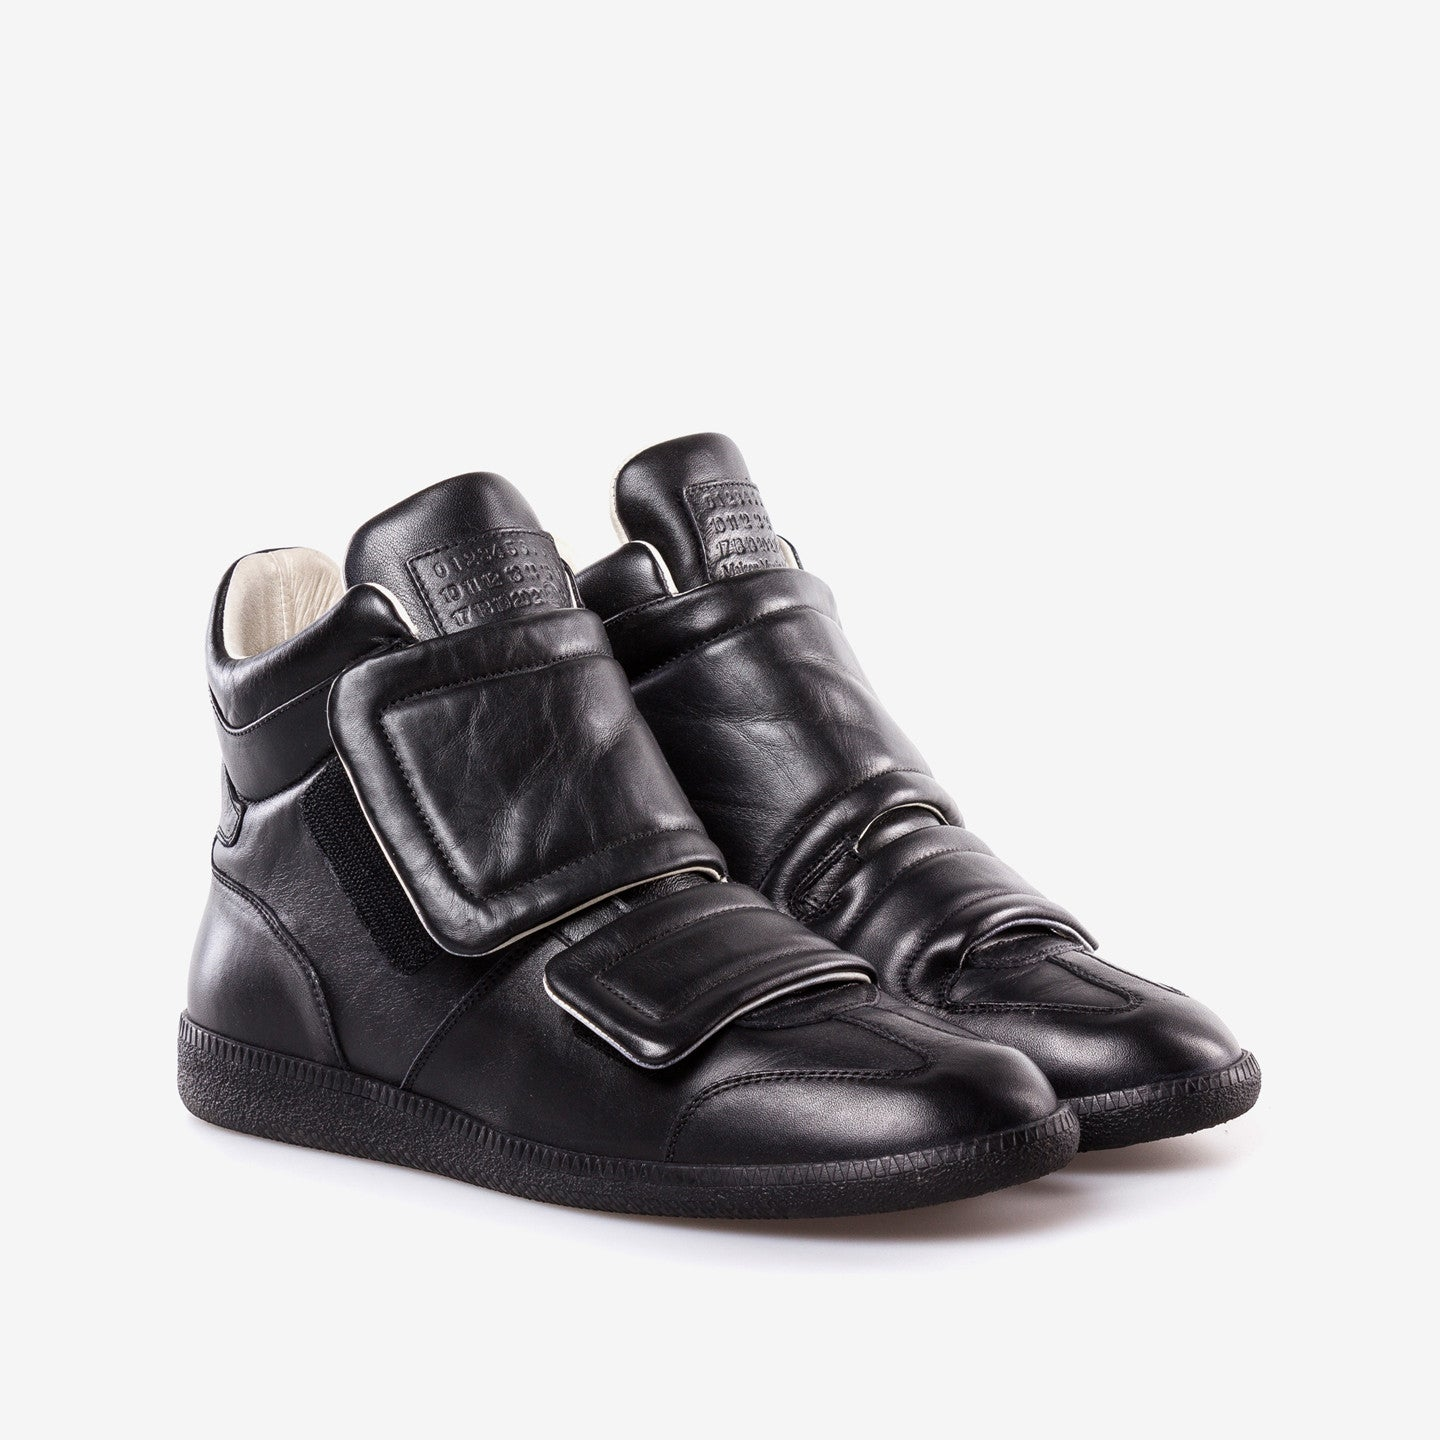 Maison Martin Margiela / Black Leather Clinic High Top Sneakers